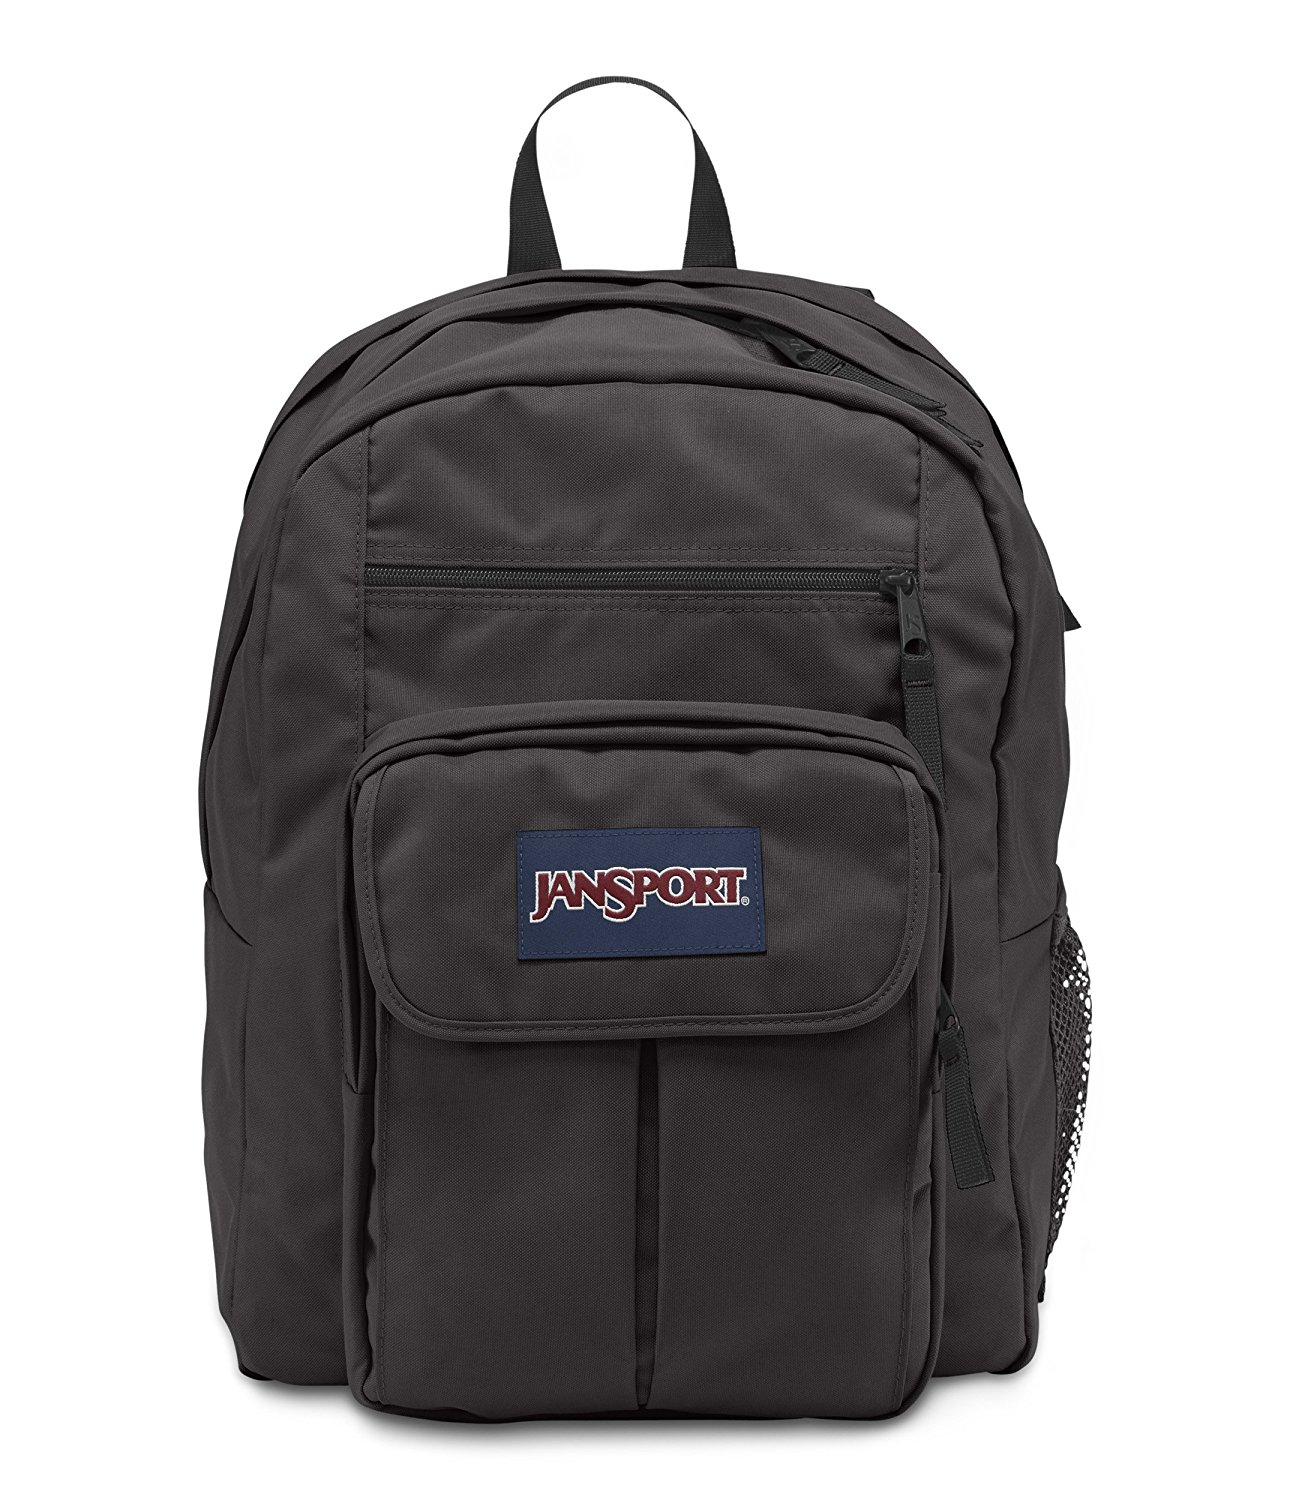 Jansport Digital Student Backpack - Forge Grey - JS00T69D6XD